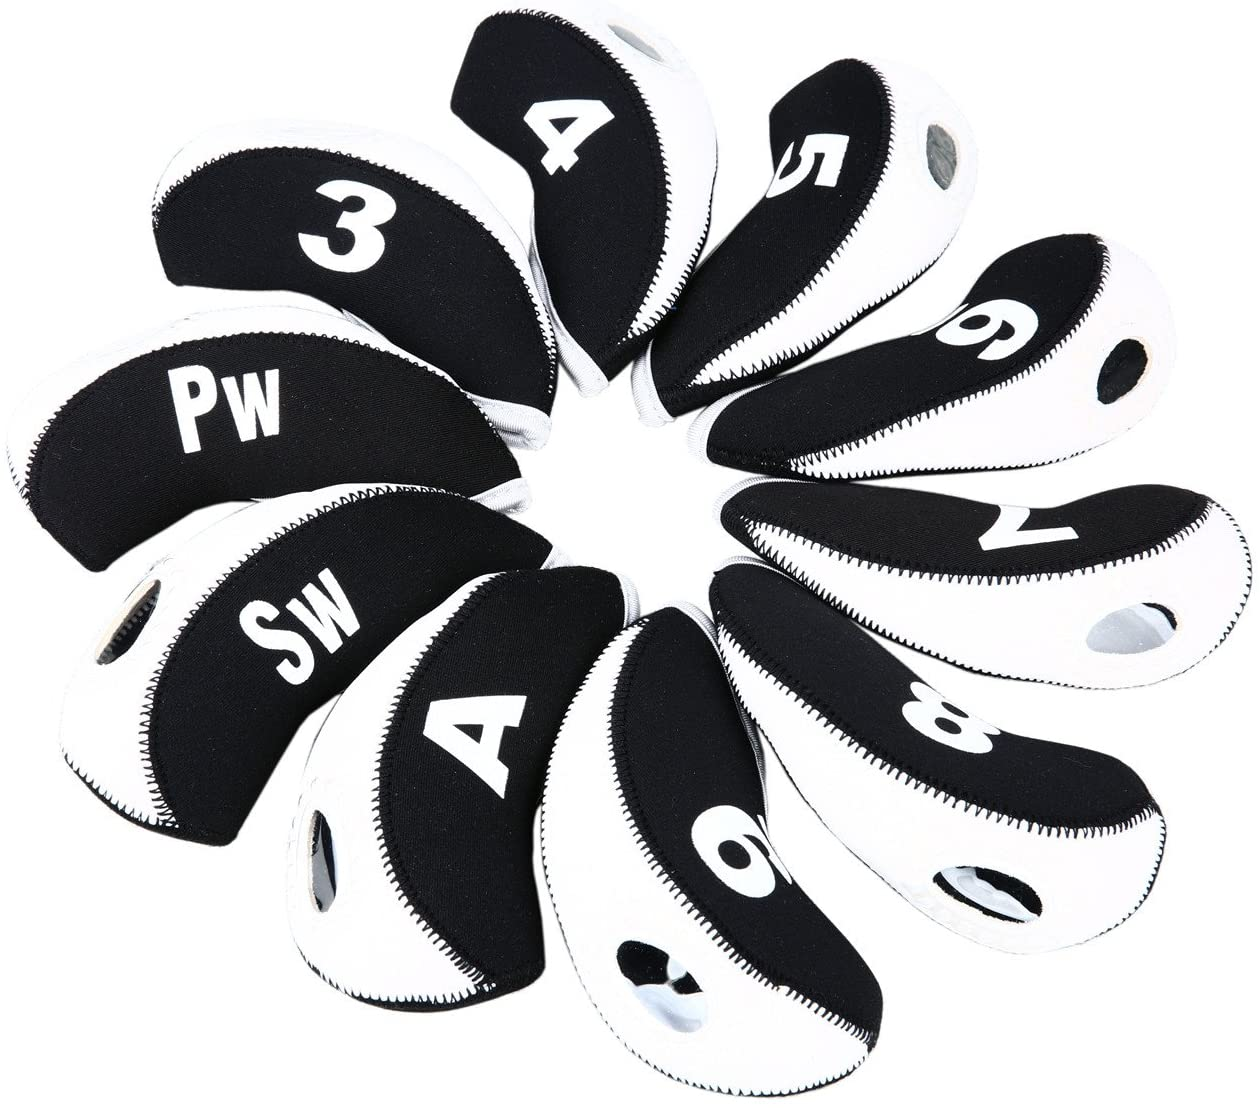 Sword &Shield sports 10pcs/Set Golf Iron Club Head Covers with Numbers Neoprene Top Window Iron Covers